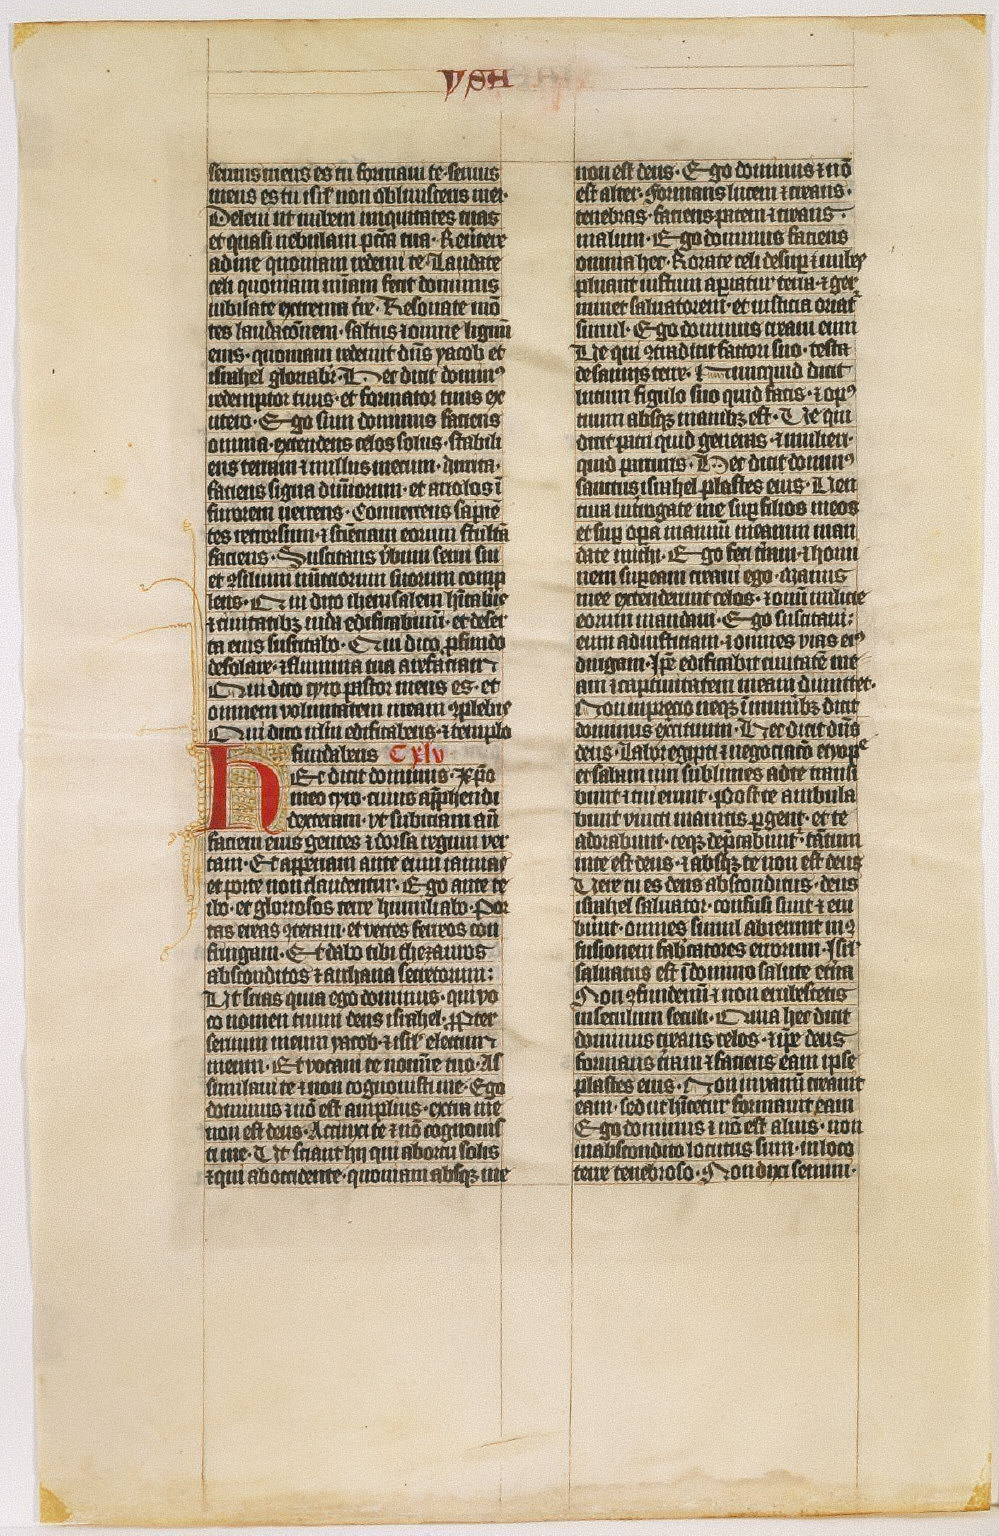 Leaf from Vulgate Bible in Latin